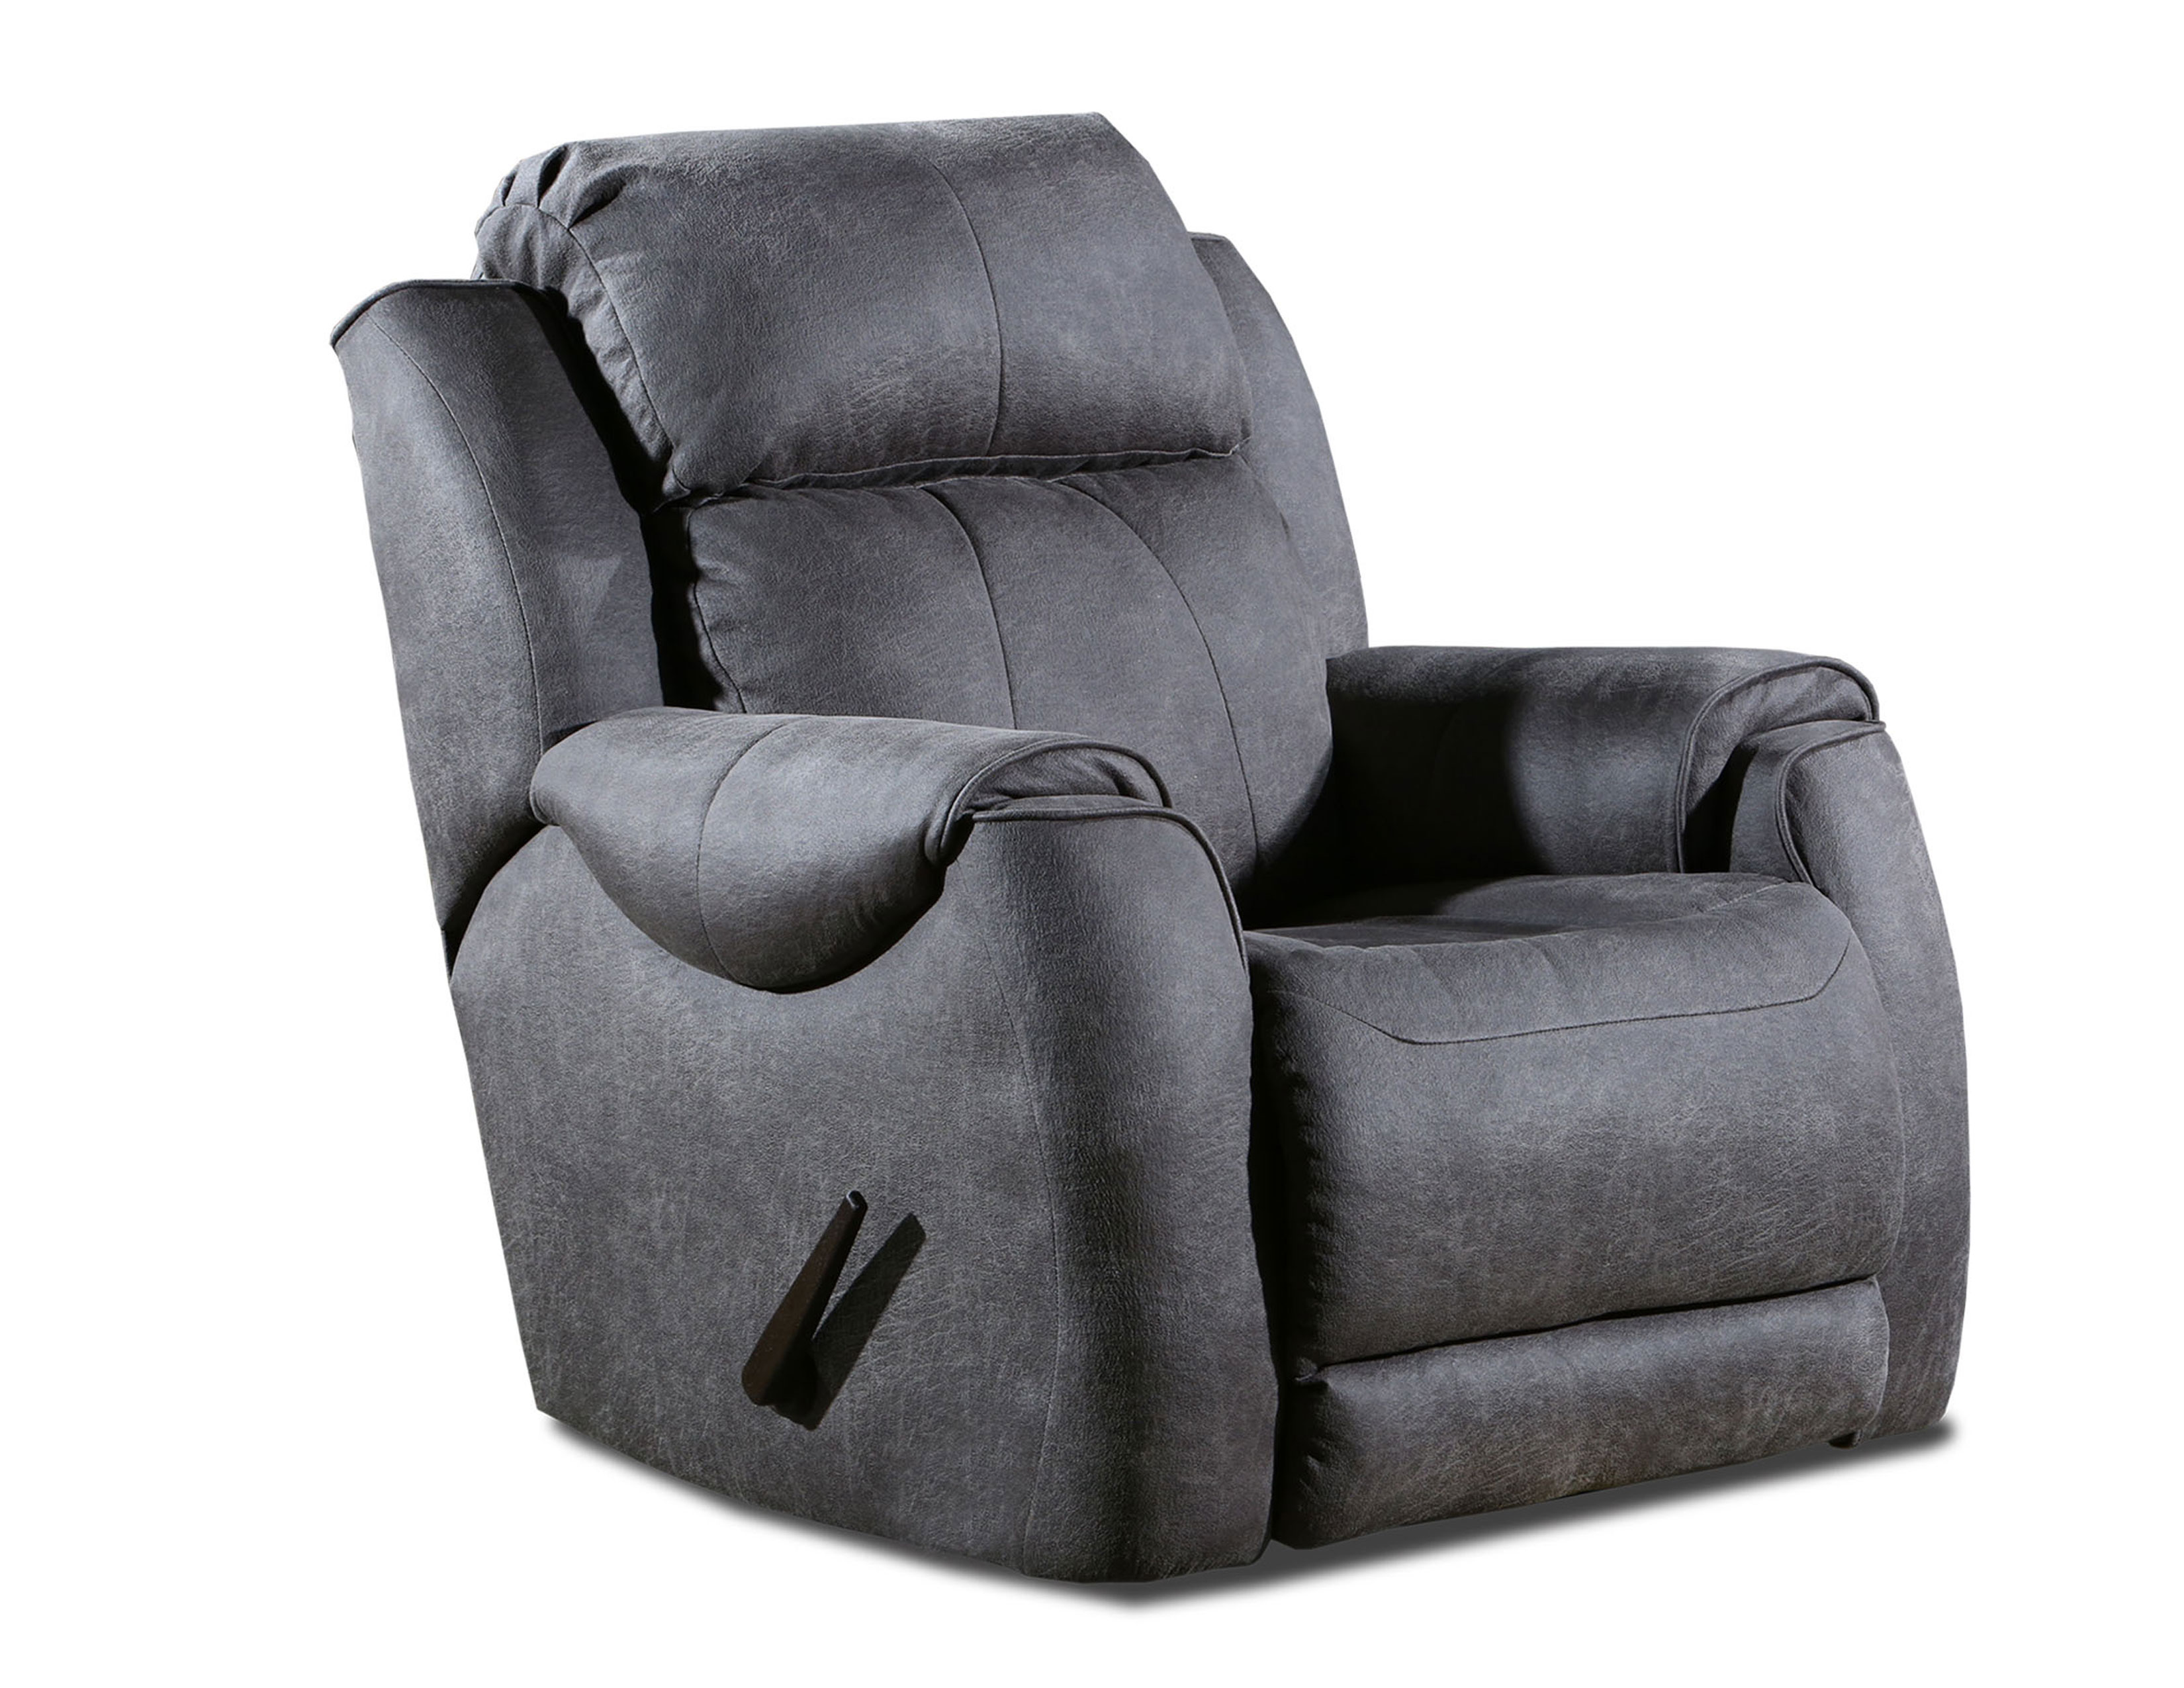 Surprising Safe Bet Double Reclining Sofa 140 Fabrics And Sofas And Ibusinesslaw Wood Chair Design Ideas Ibusinesslaworg